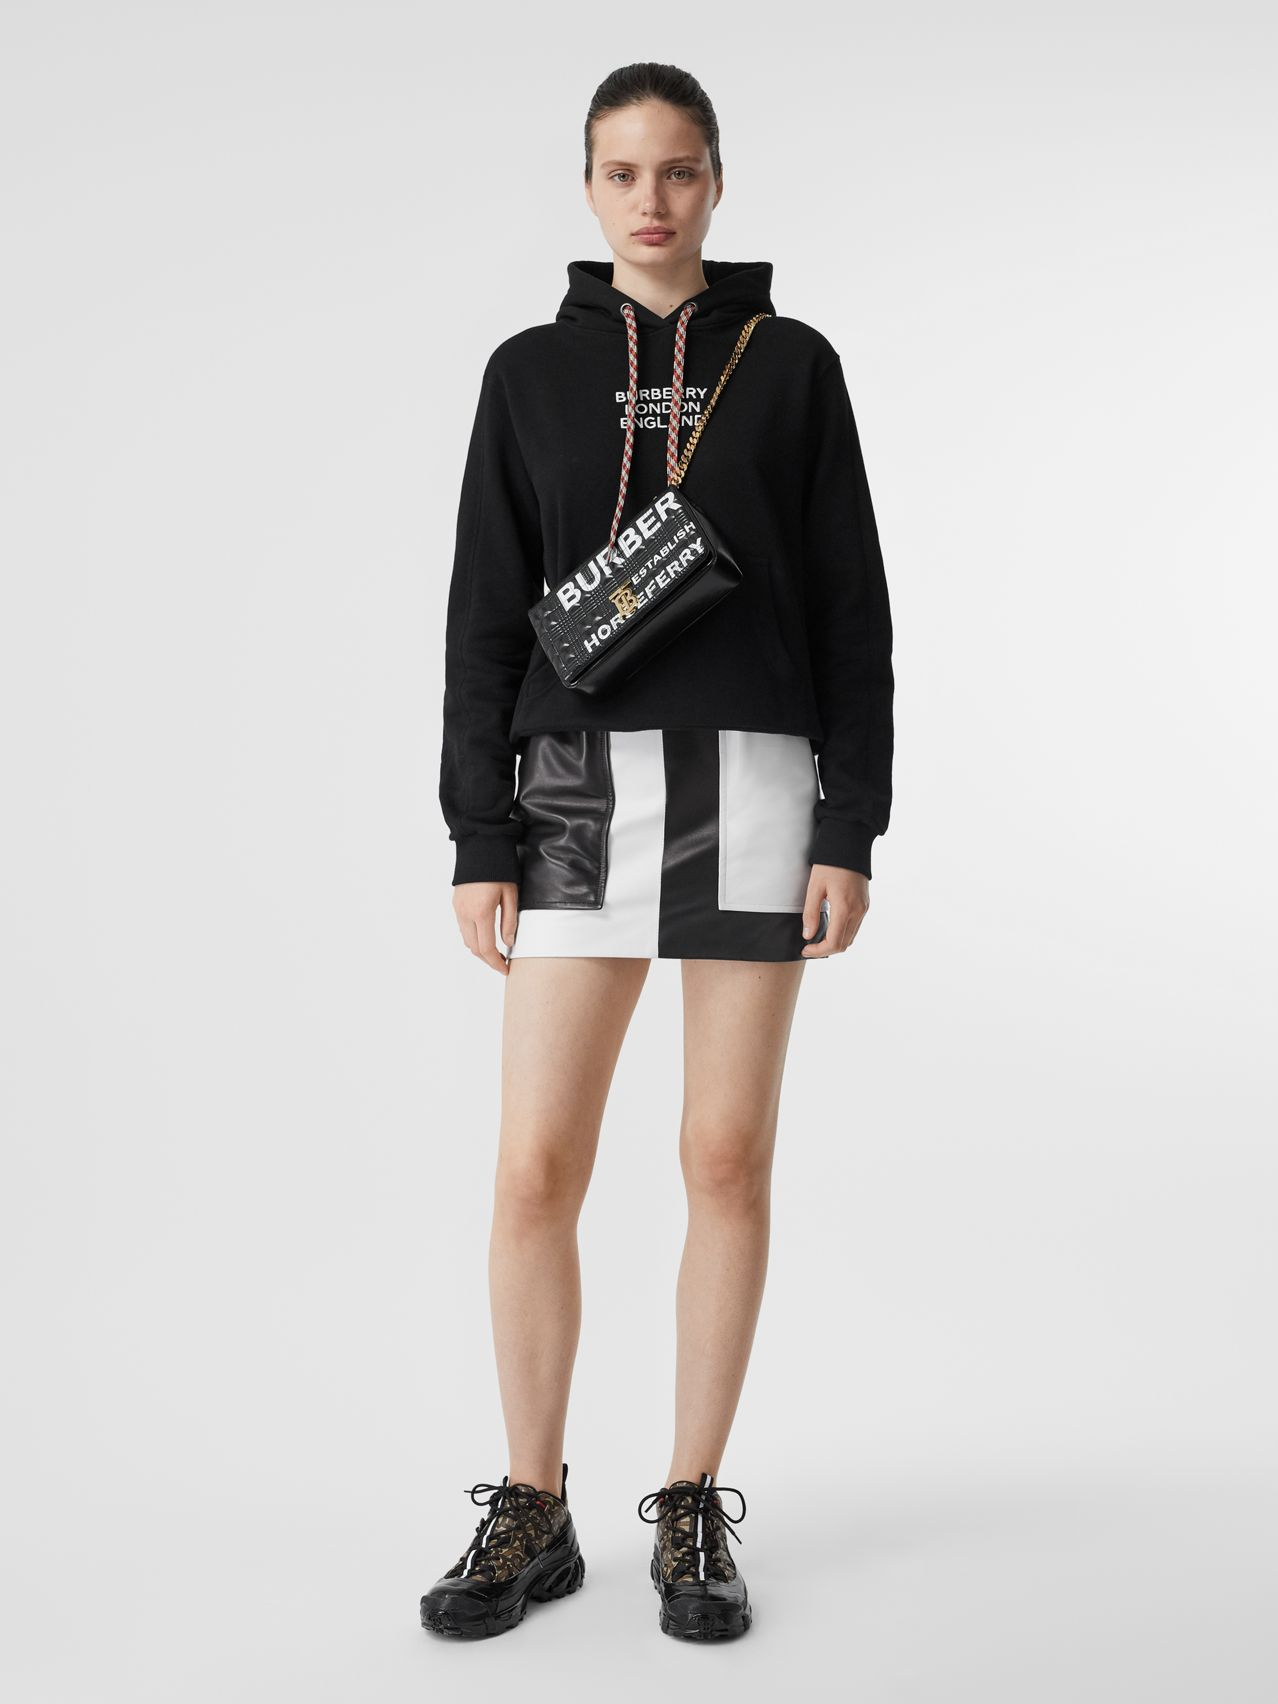 Embroidered Logo Cotton Oversized Hoodie by Burberry, available on burberry.com for $290 Kendall Jenner Top SIMILAR PRODUCT